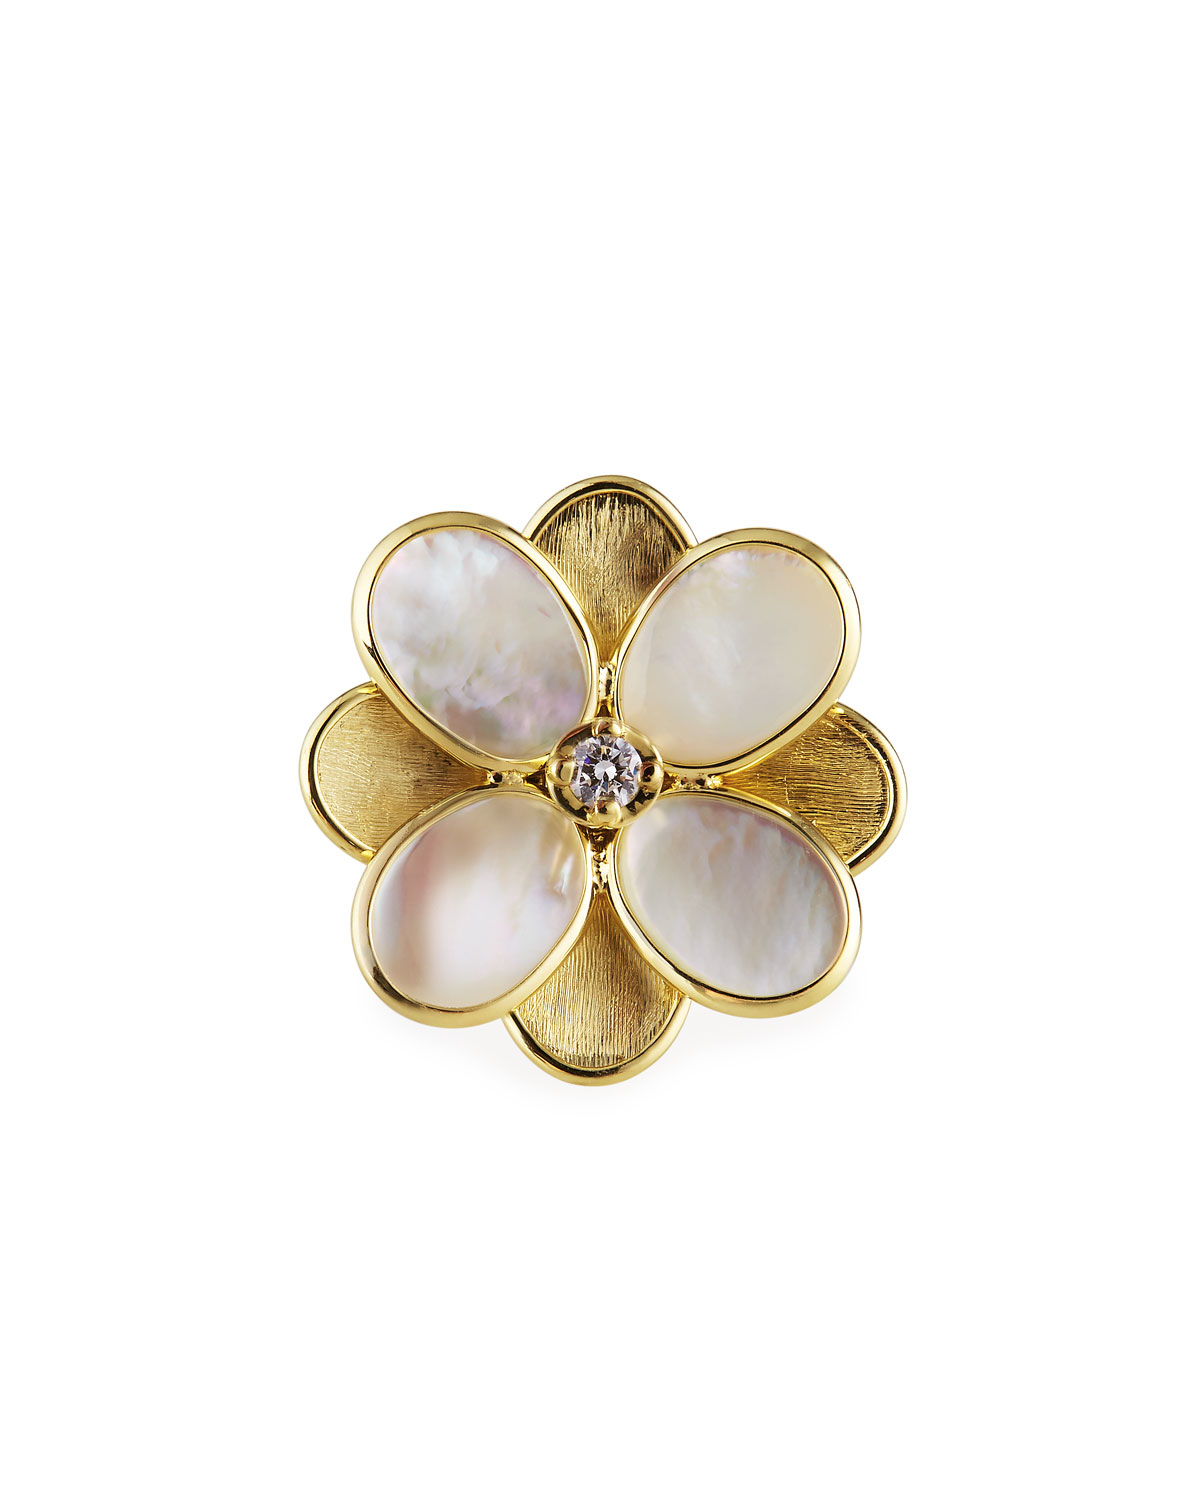 Marco Bicego Petali Mother-of-Pearl Ring, Size 7